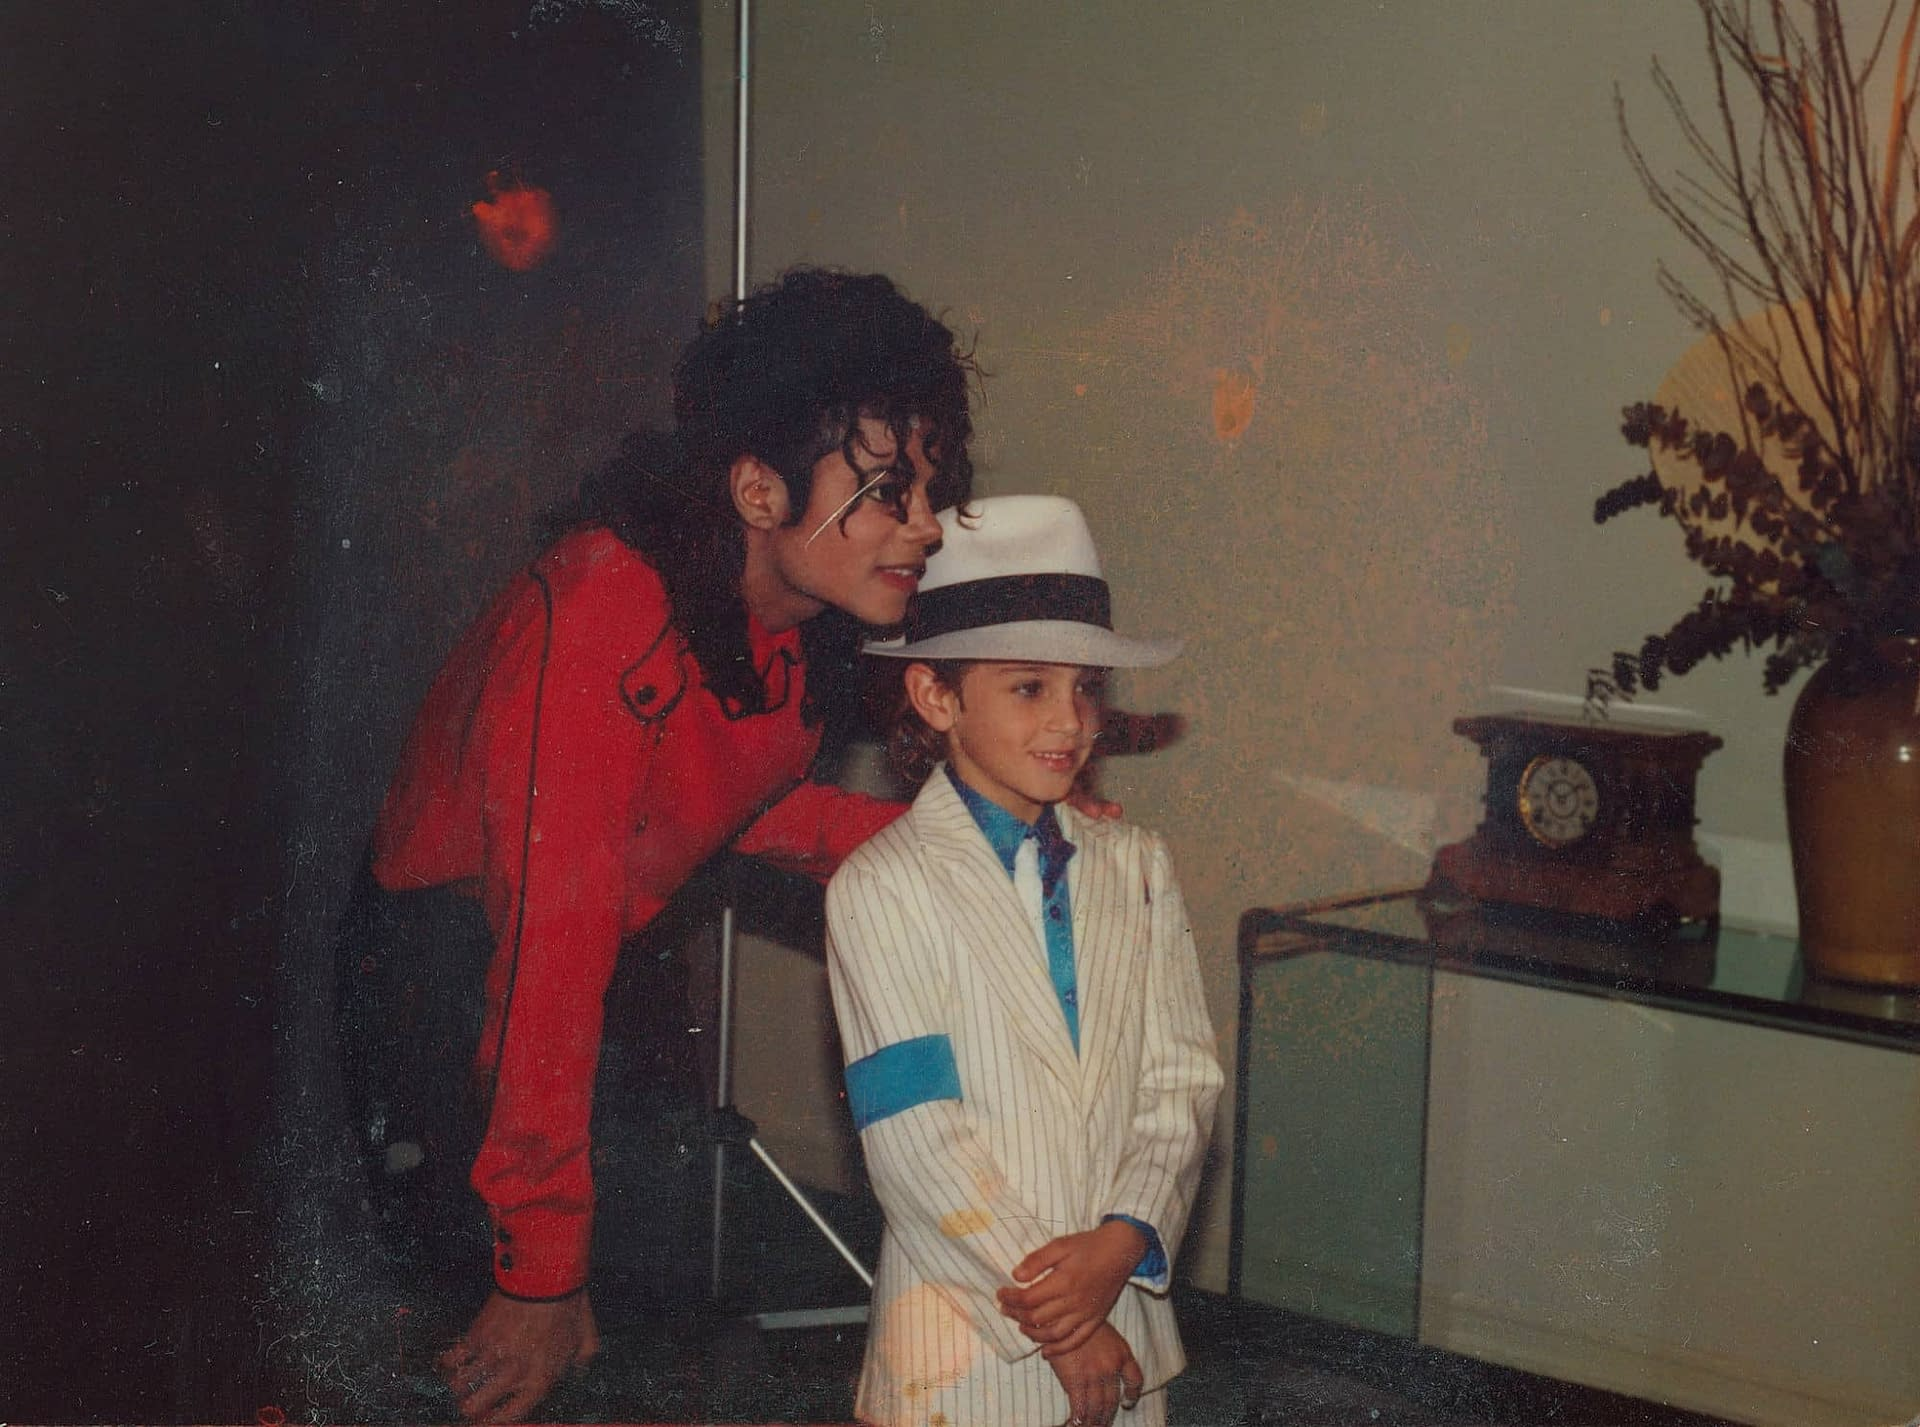 First Trailer for the Michael Jackson Documentary Leaving Neverland, Director Talks Follow-Up